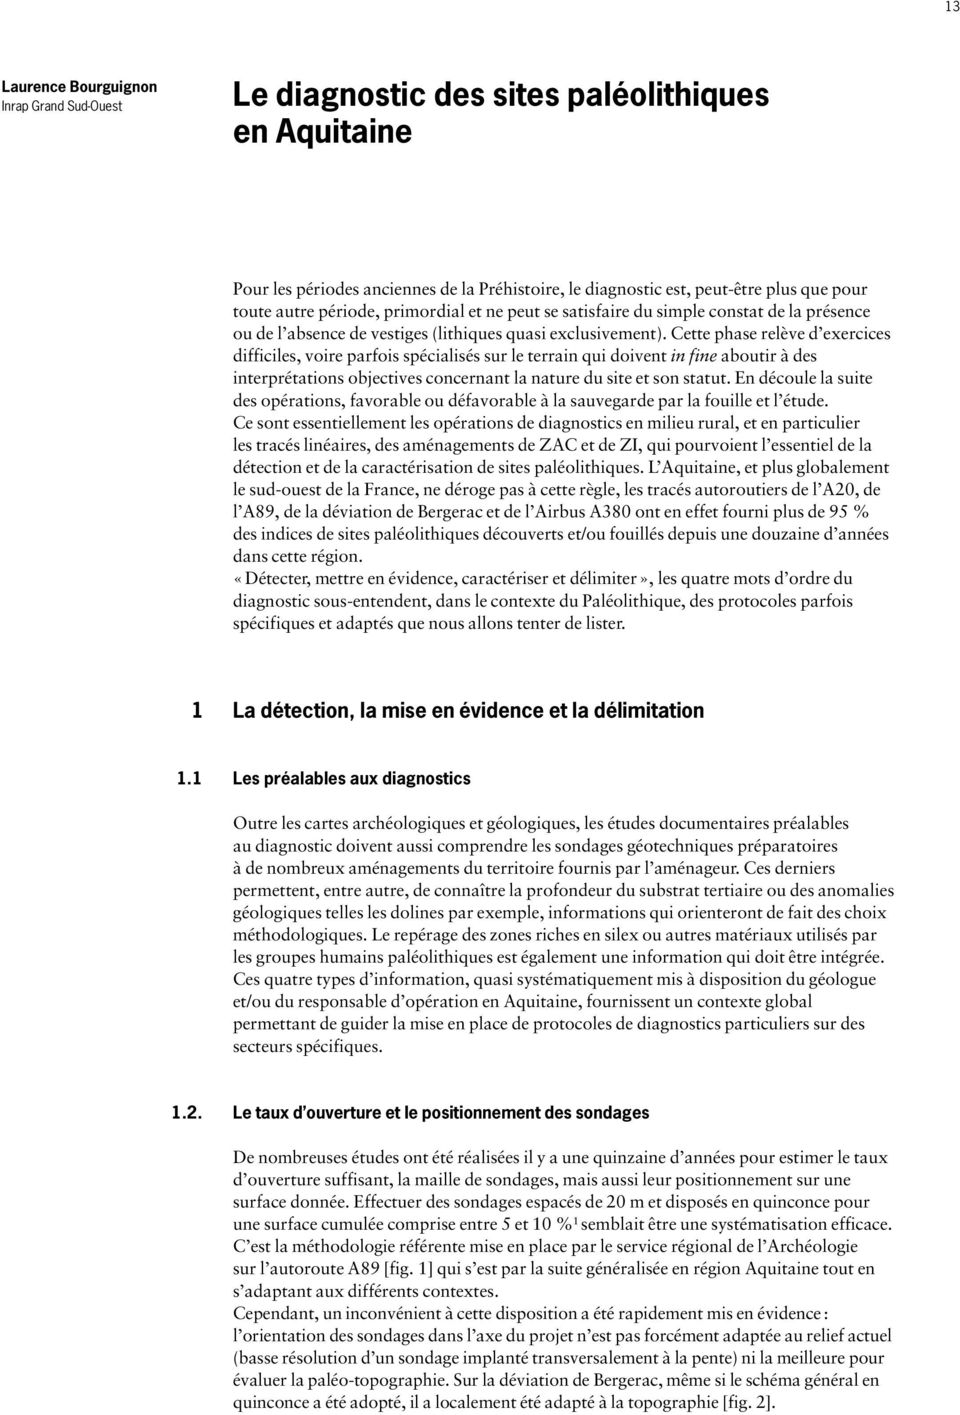 Cette phase relève d exercices difficiles, voire parfois spécialisés sur le terrain qui doivent in fine aboutir à des interprétations objectives concernant la nature du site et son statut.